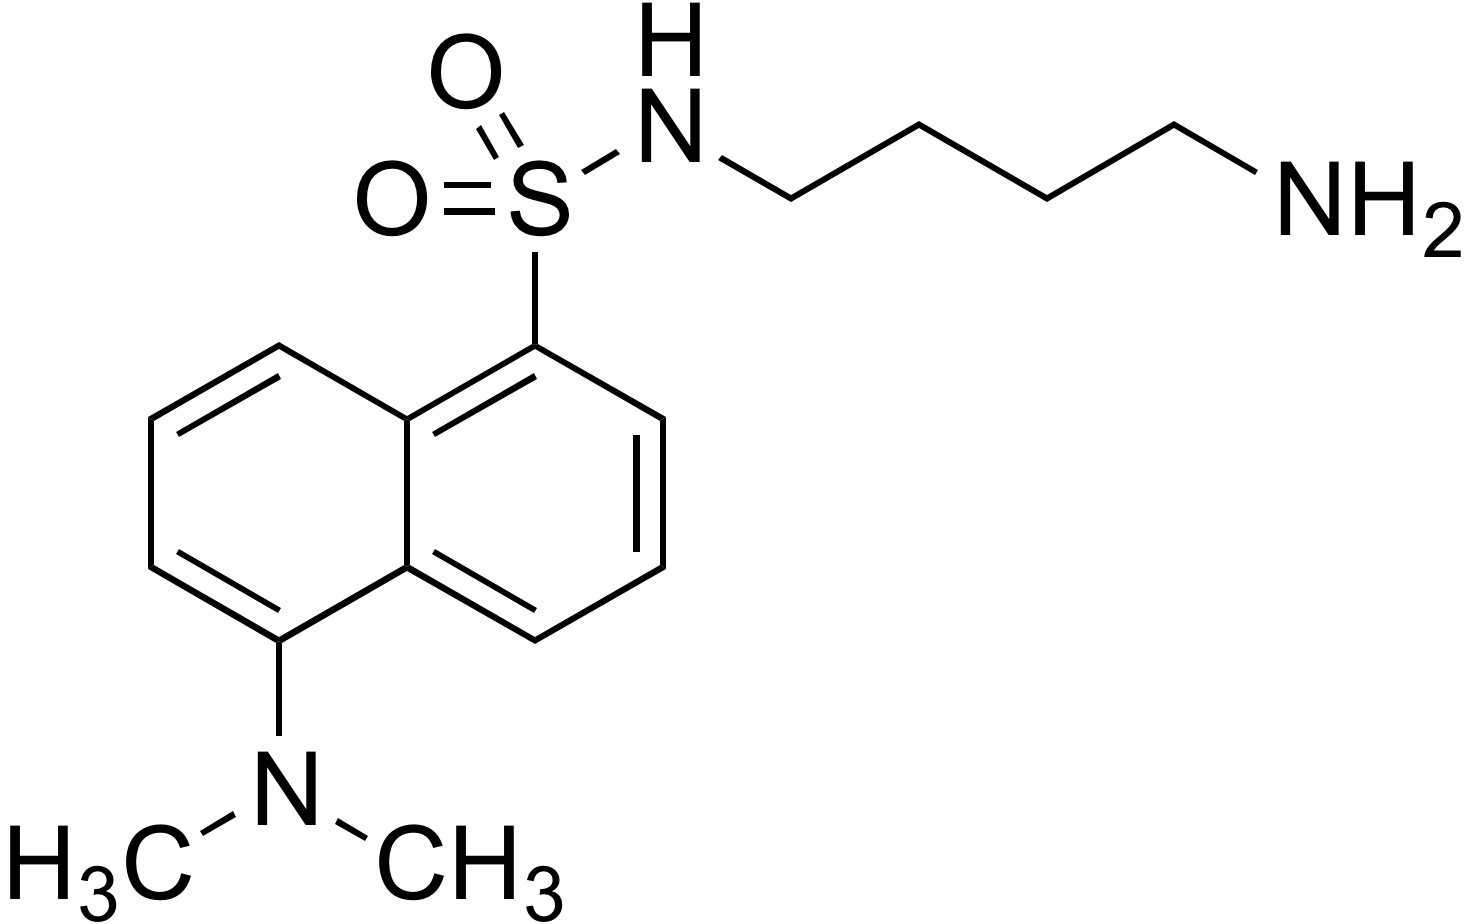 N-Dansyl 1,4-diaminobutane